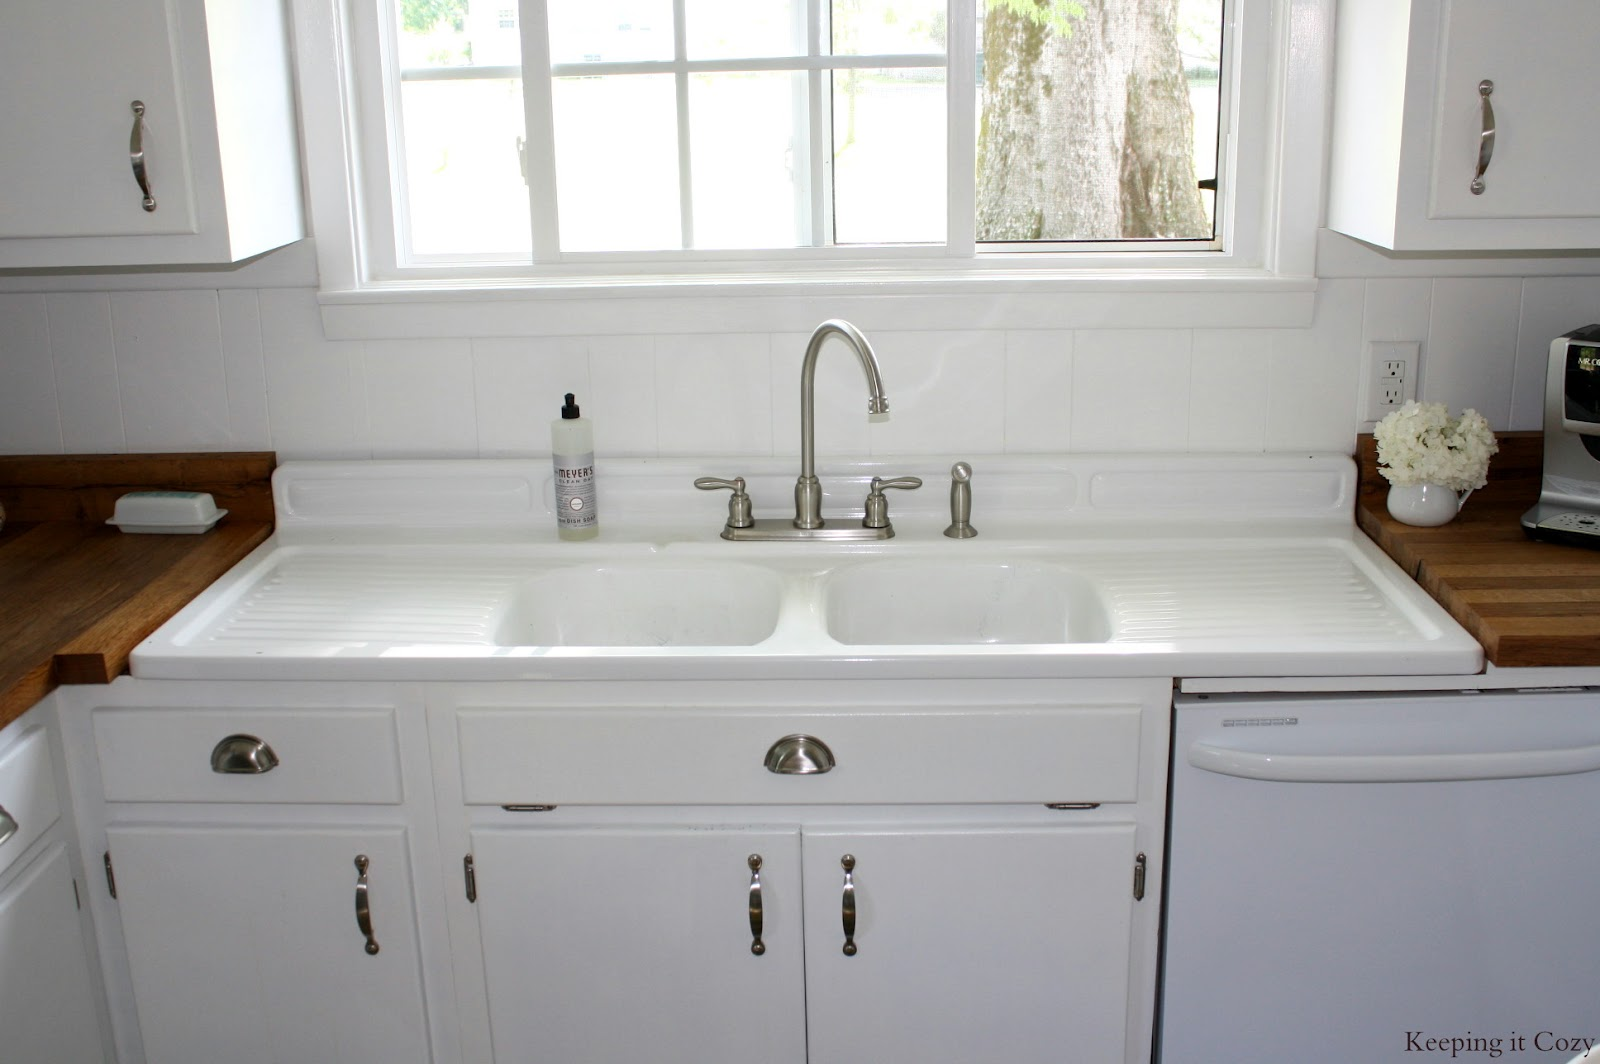 Kitchen Sink Countertops : Remodelaholic country kitchen with diy reclaimed wood